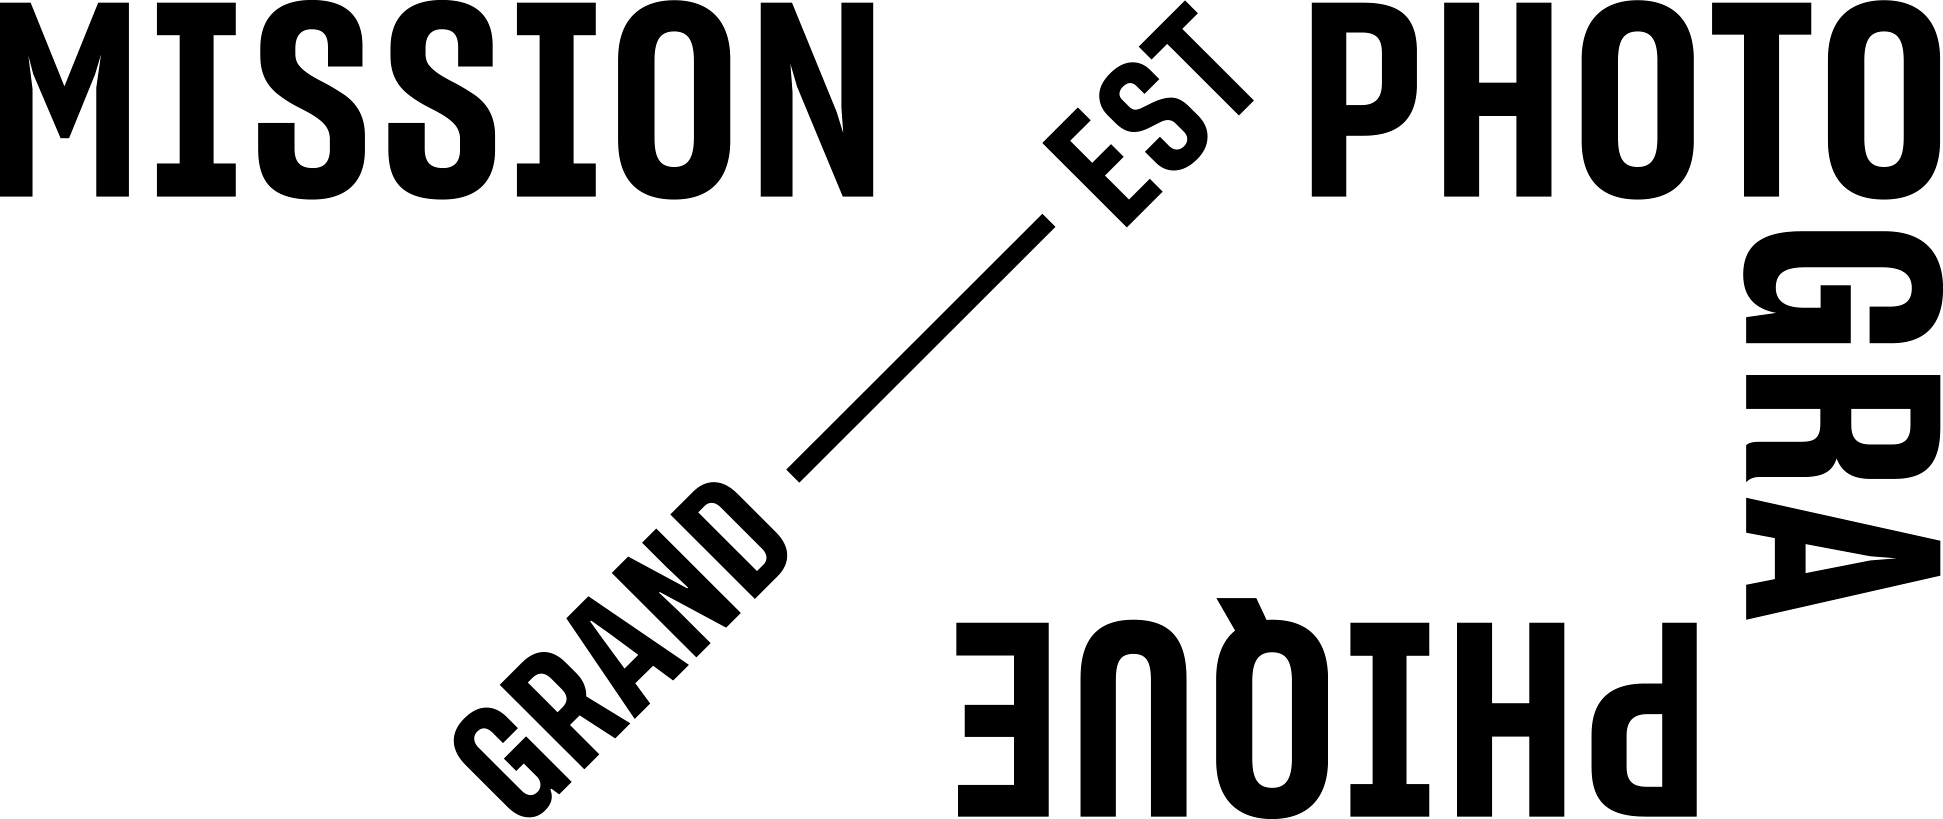 Mission photographique Grand-Est